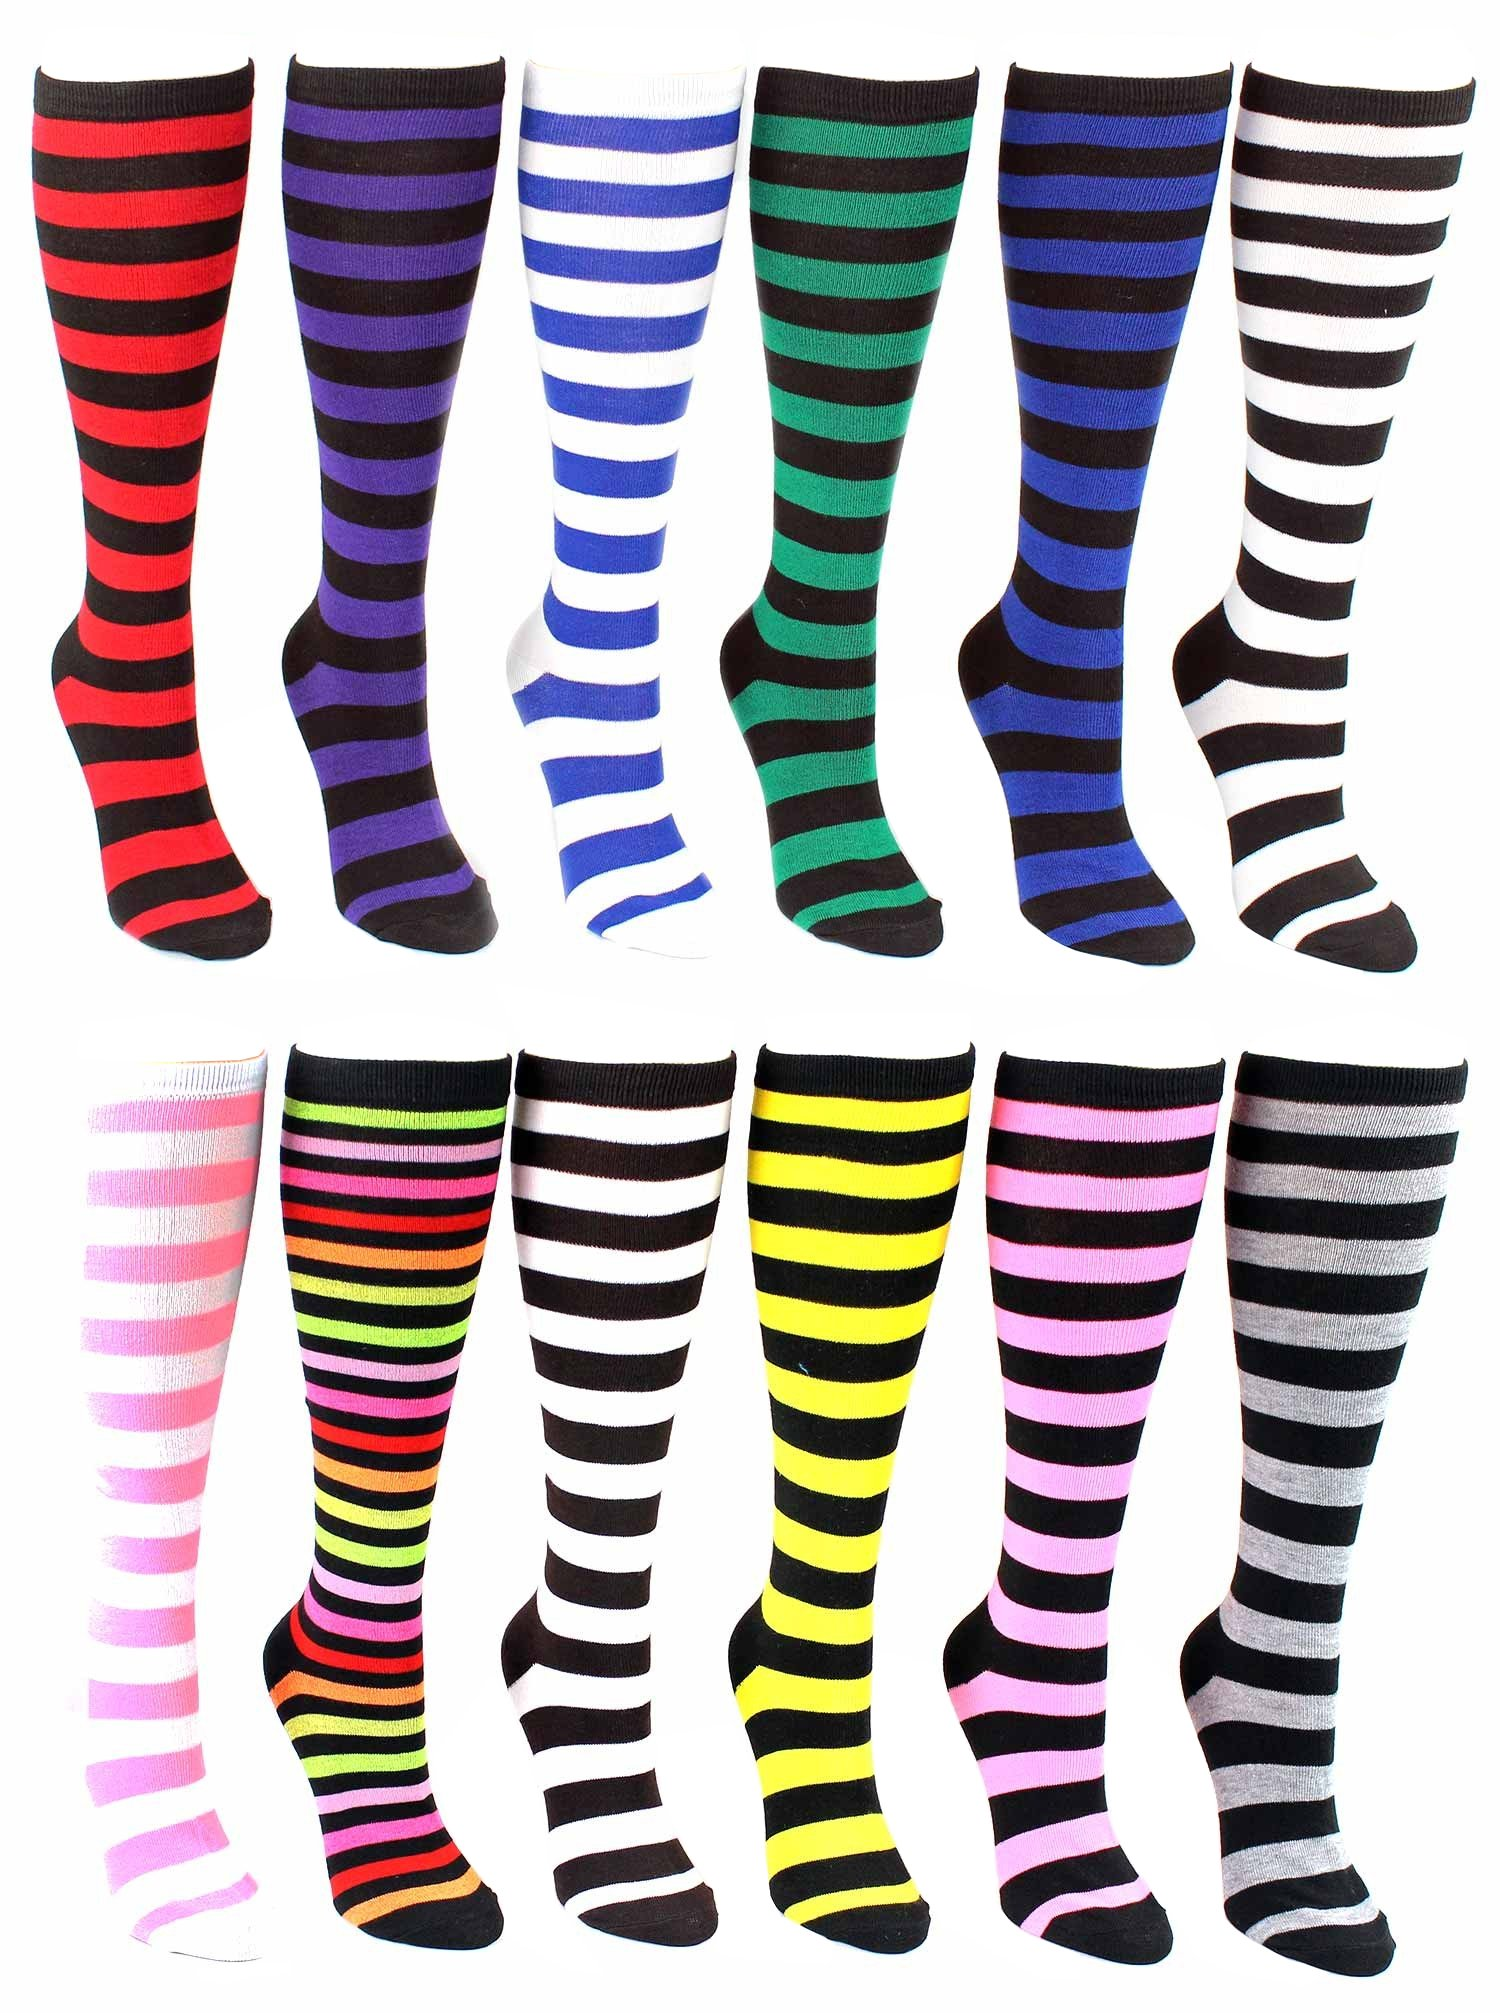 12 Pairs of Womens Knee High Socks, Premium Soft, Colorful Patterned Ladies Chic Styles (Assorted Colorful Stripes)